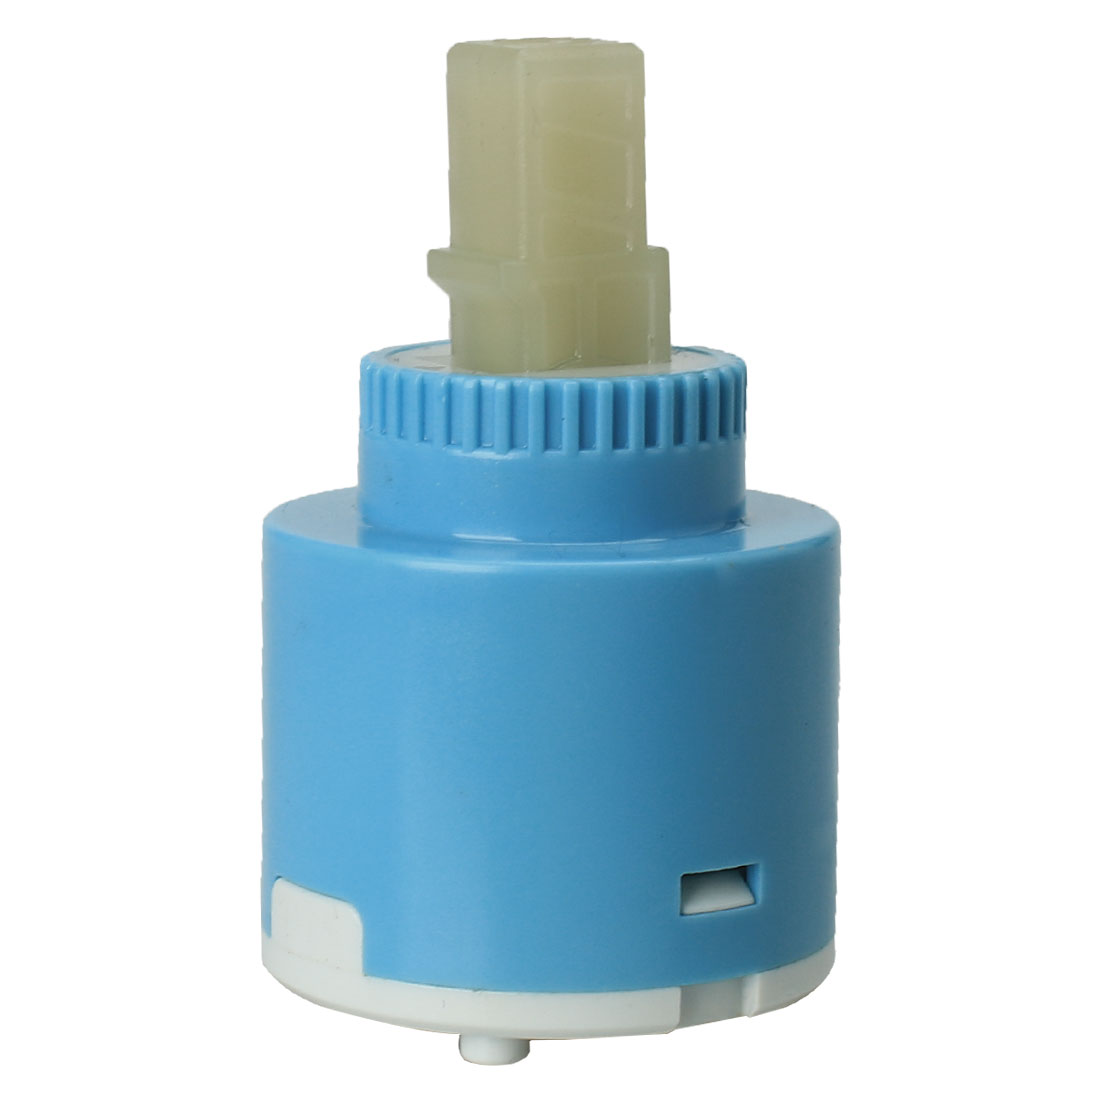 Household Kitchen Repairing Ceramic Disc Inner Control Faucet Cartridge Valve